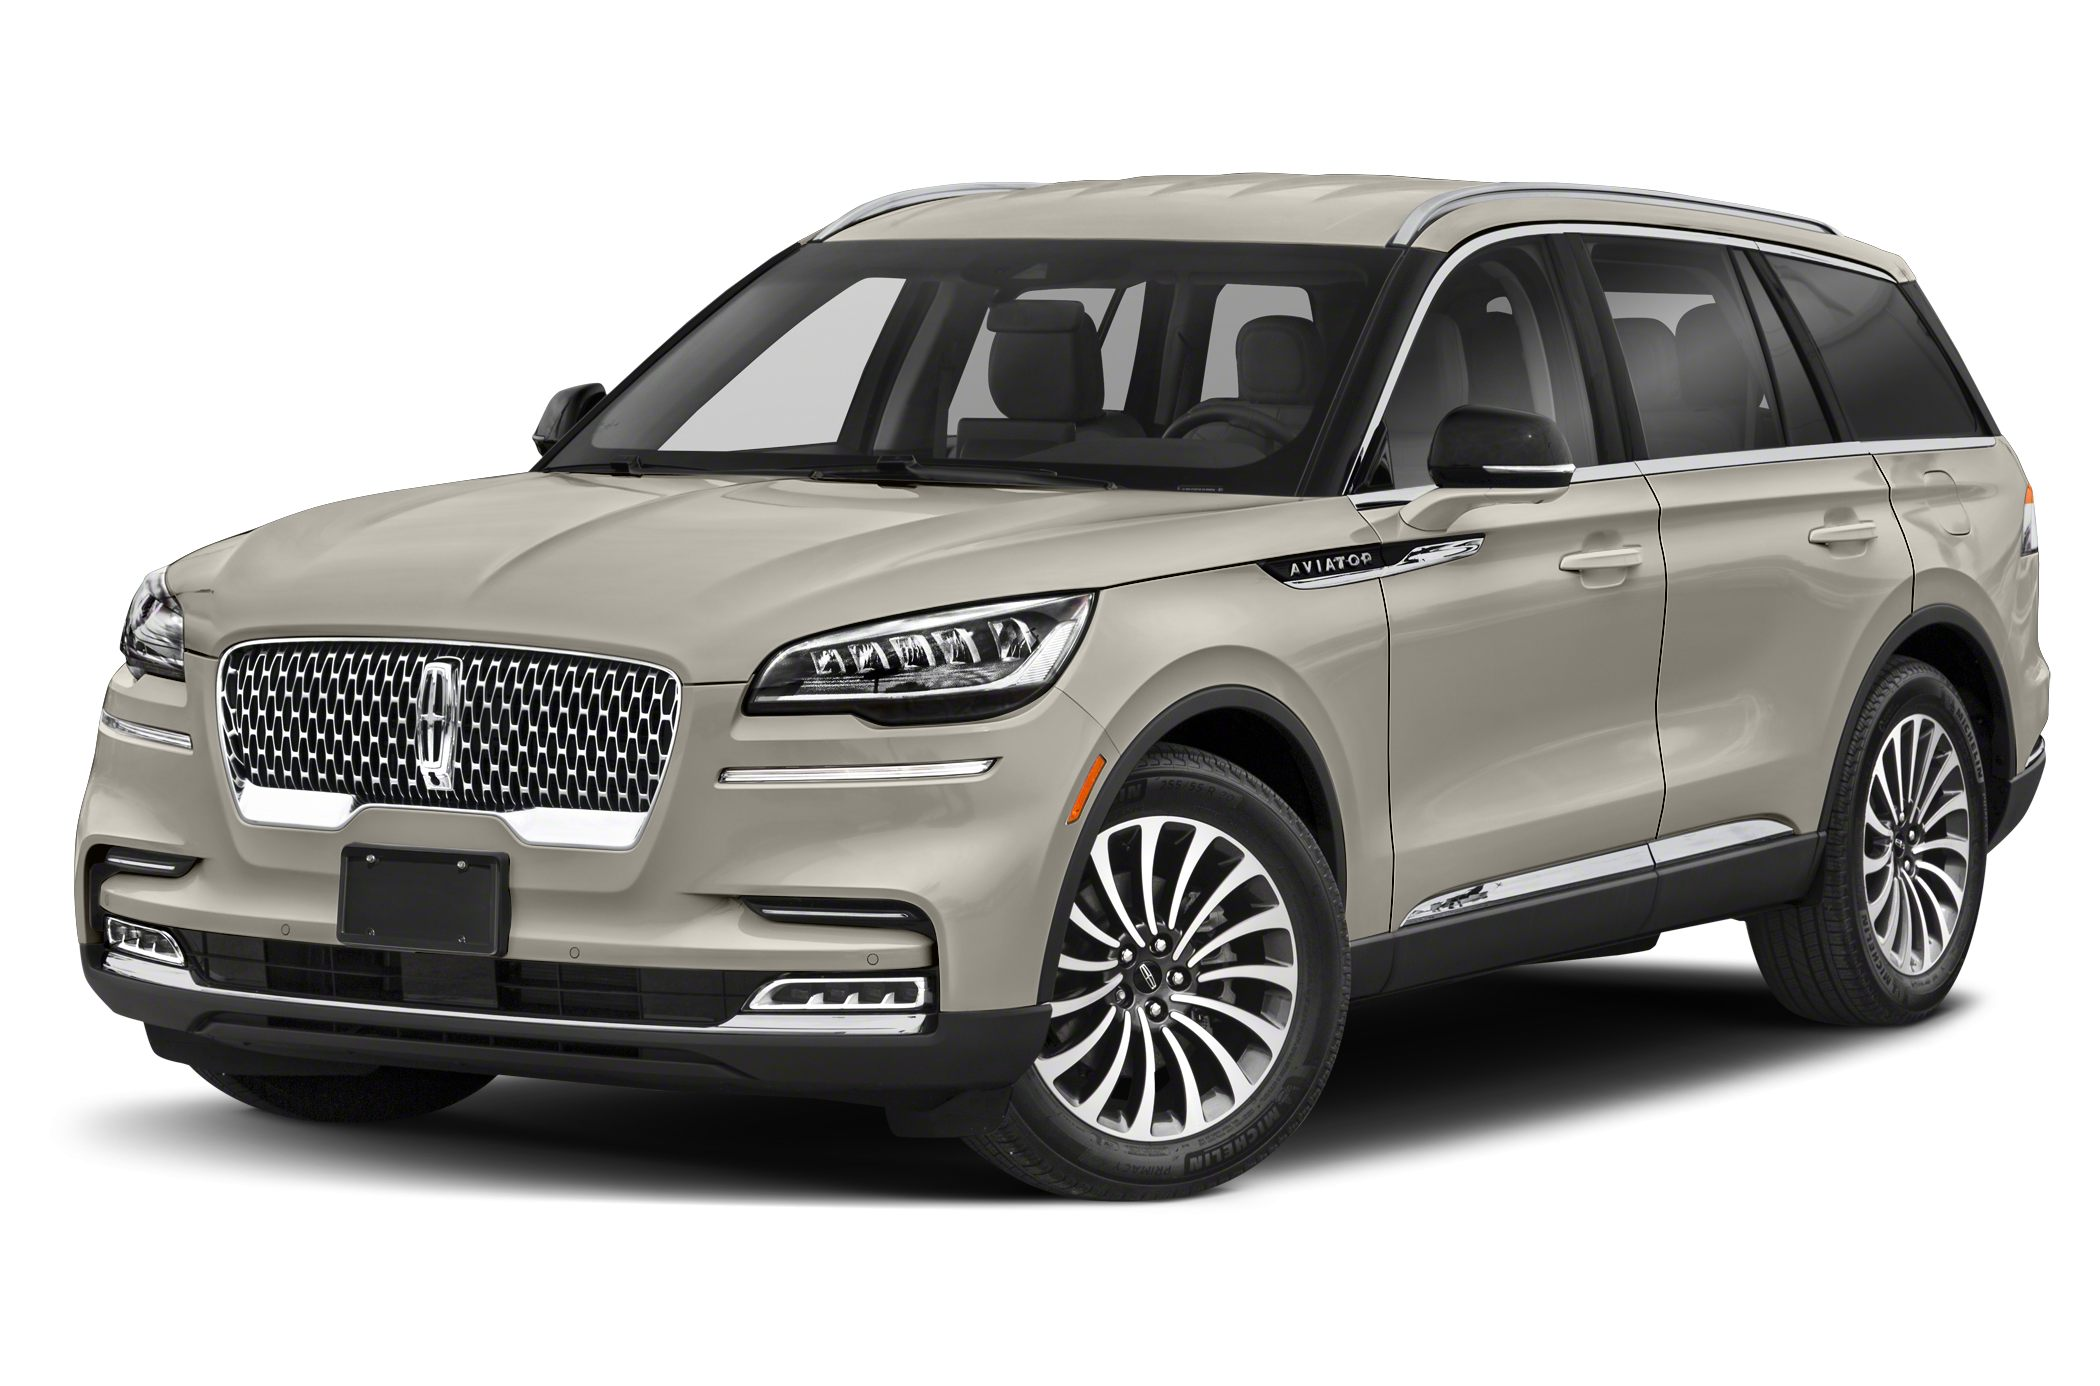 2020 Lincoln Aviator Grand Touring 4dr All-wheel Drive